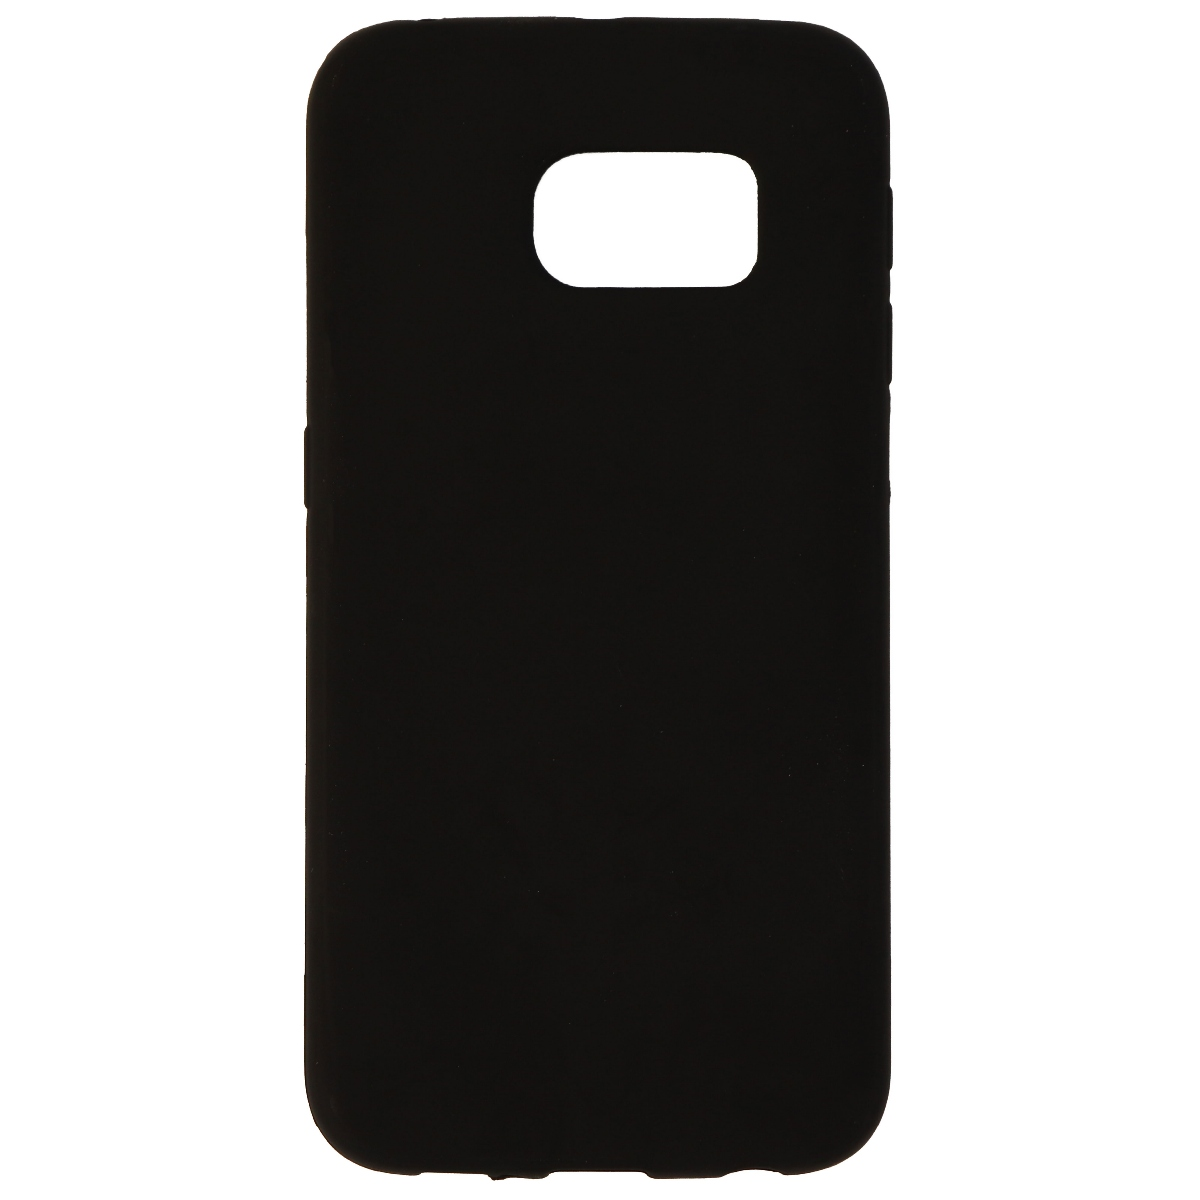 Insignia Soft Shell Protective Soft Gel Case for Samsung Galaxy S6 Edge - Black